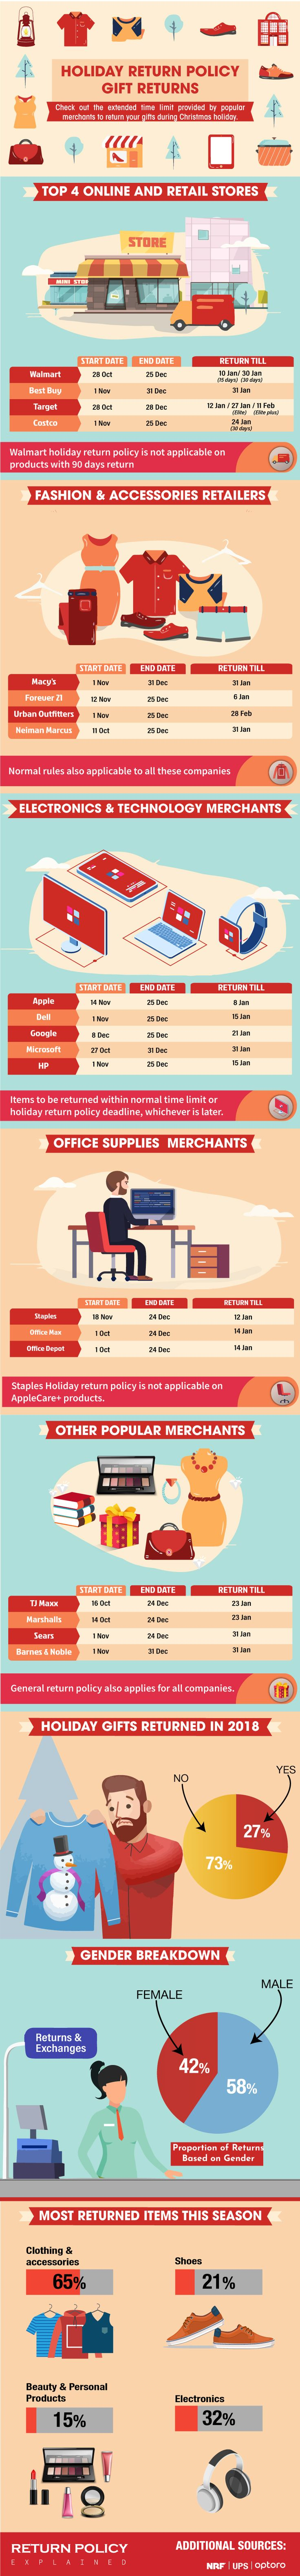 Holiday Return Policy... (With images) Infographic